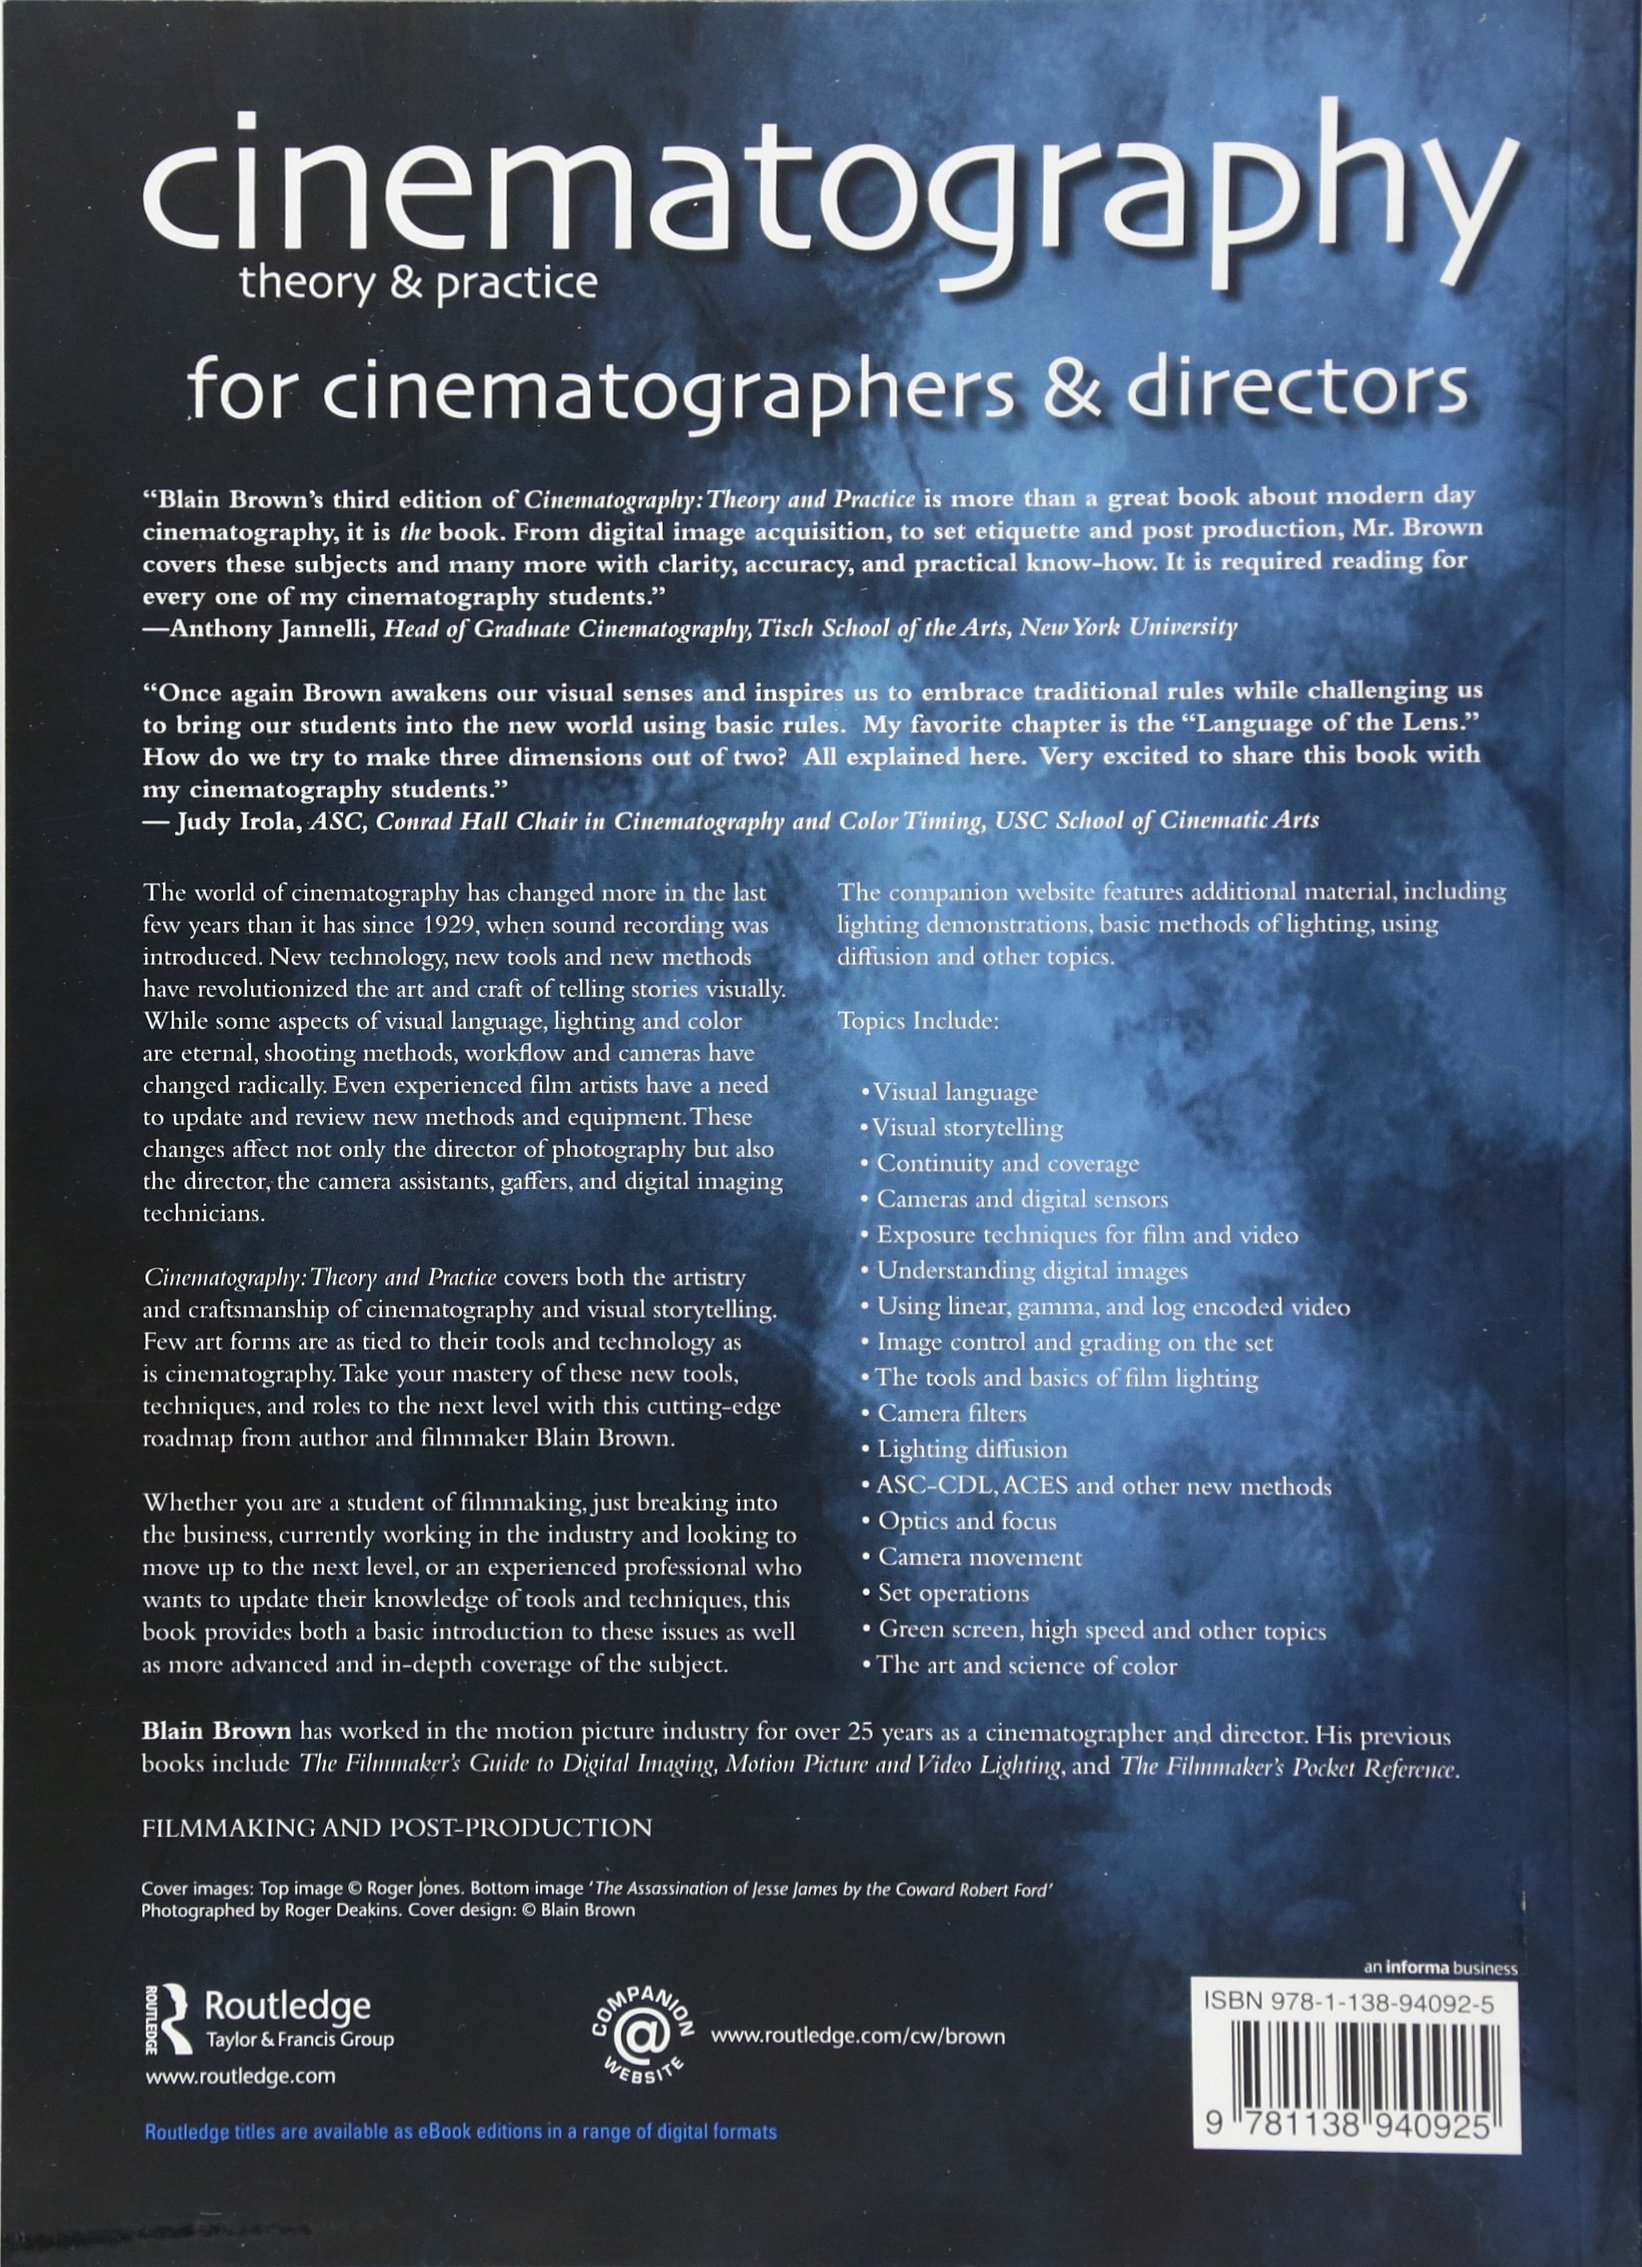 Buy cinematography theory and practice image making for buy cinematography theory and practice image making for cinematographers and directors volume 3 book online at low prices in india cinematography fandeluxe Choice Image